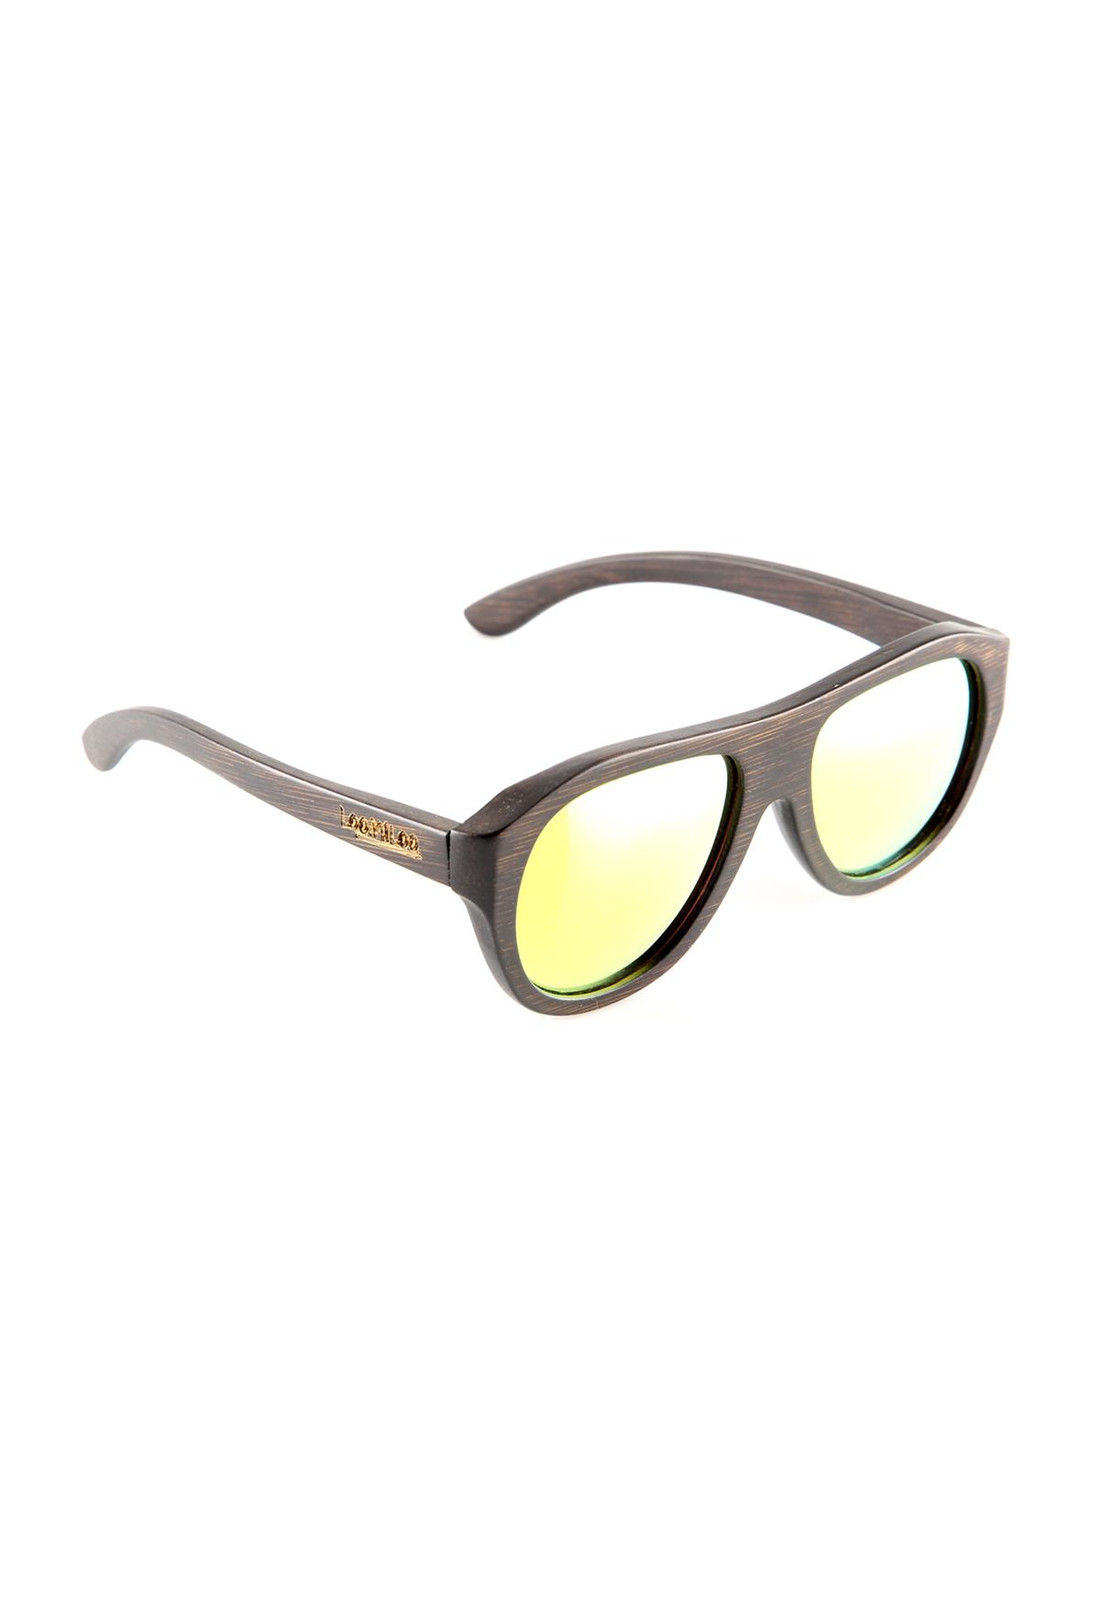 Sonnenbrille Jack Yellow Glasses